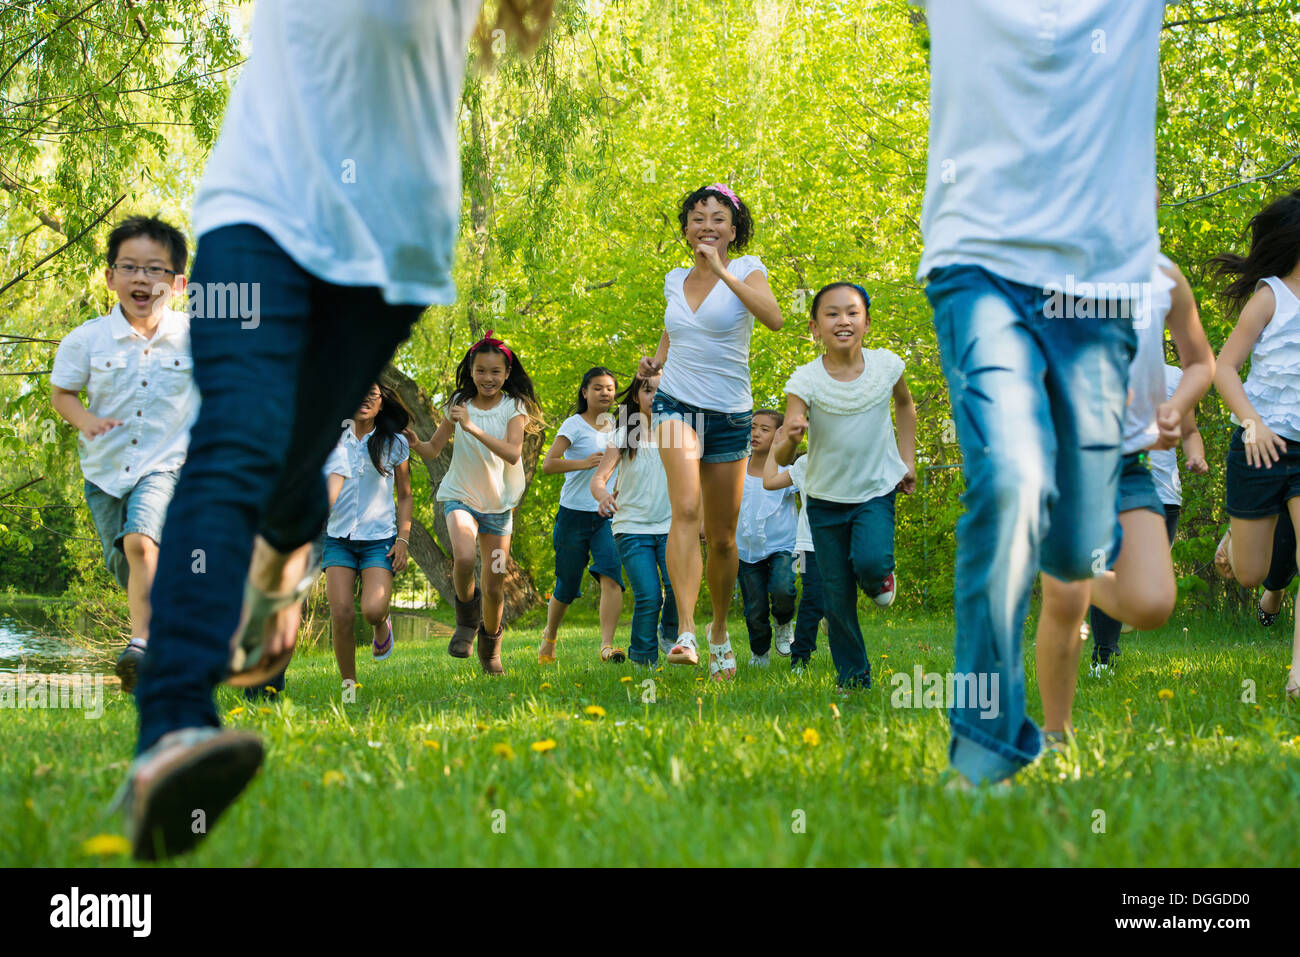 People running in park - Stock Image